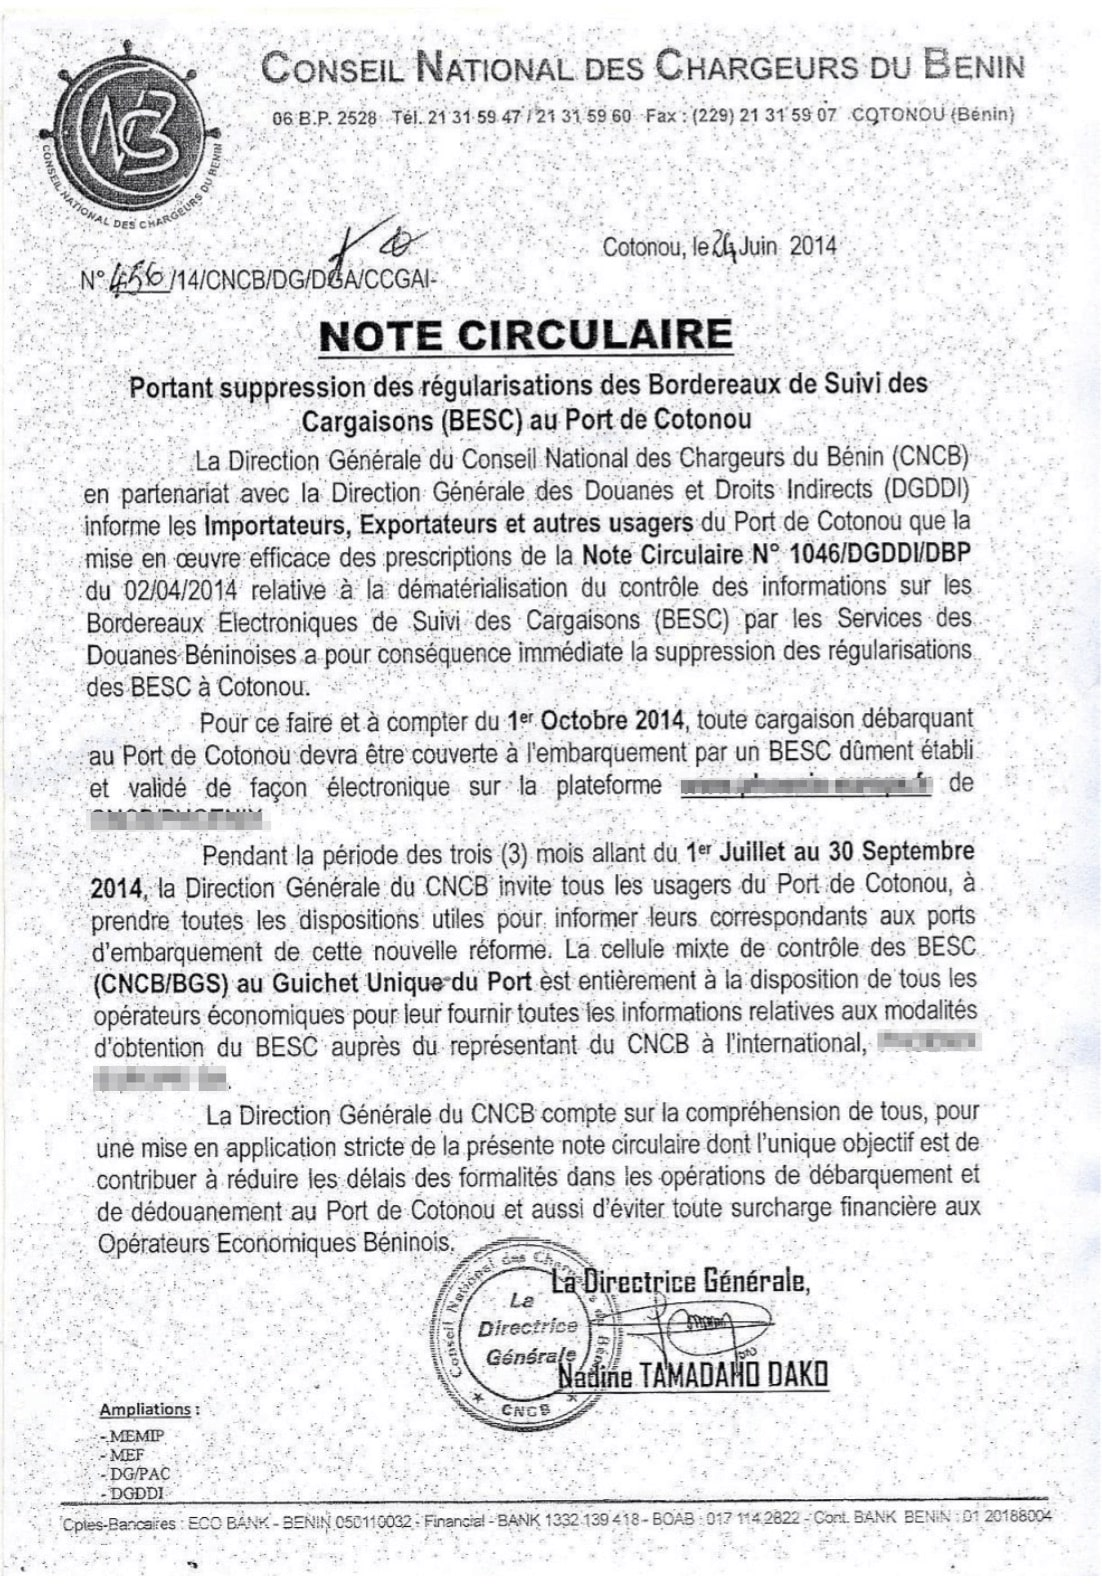 An announcement from Benin officials about the BESC regulations